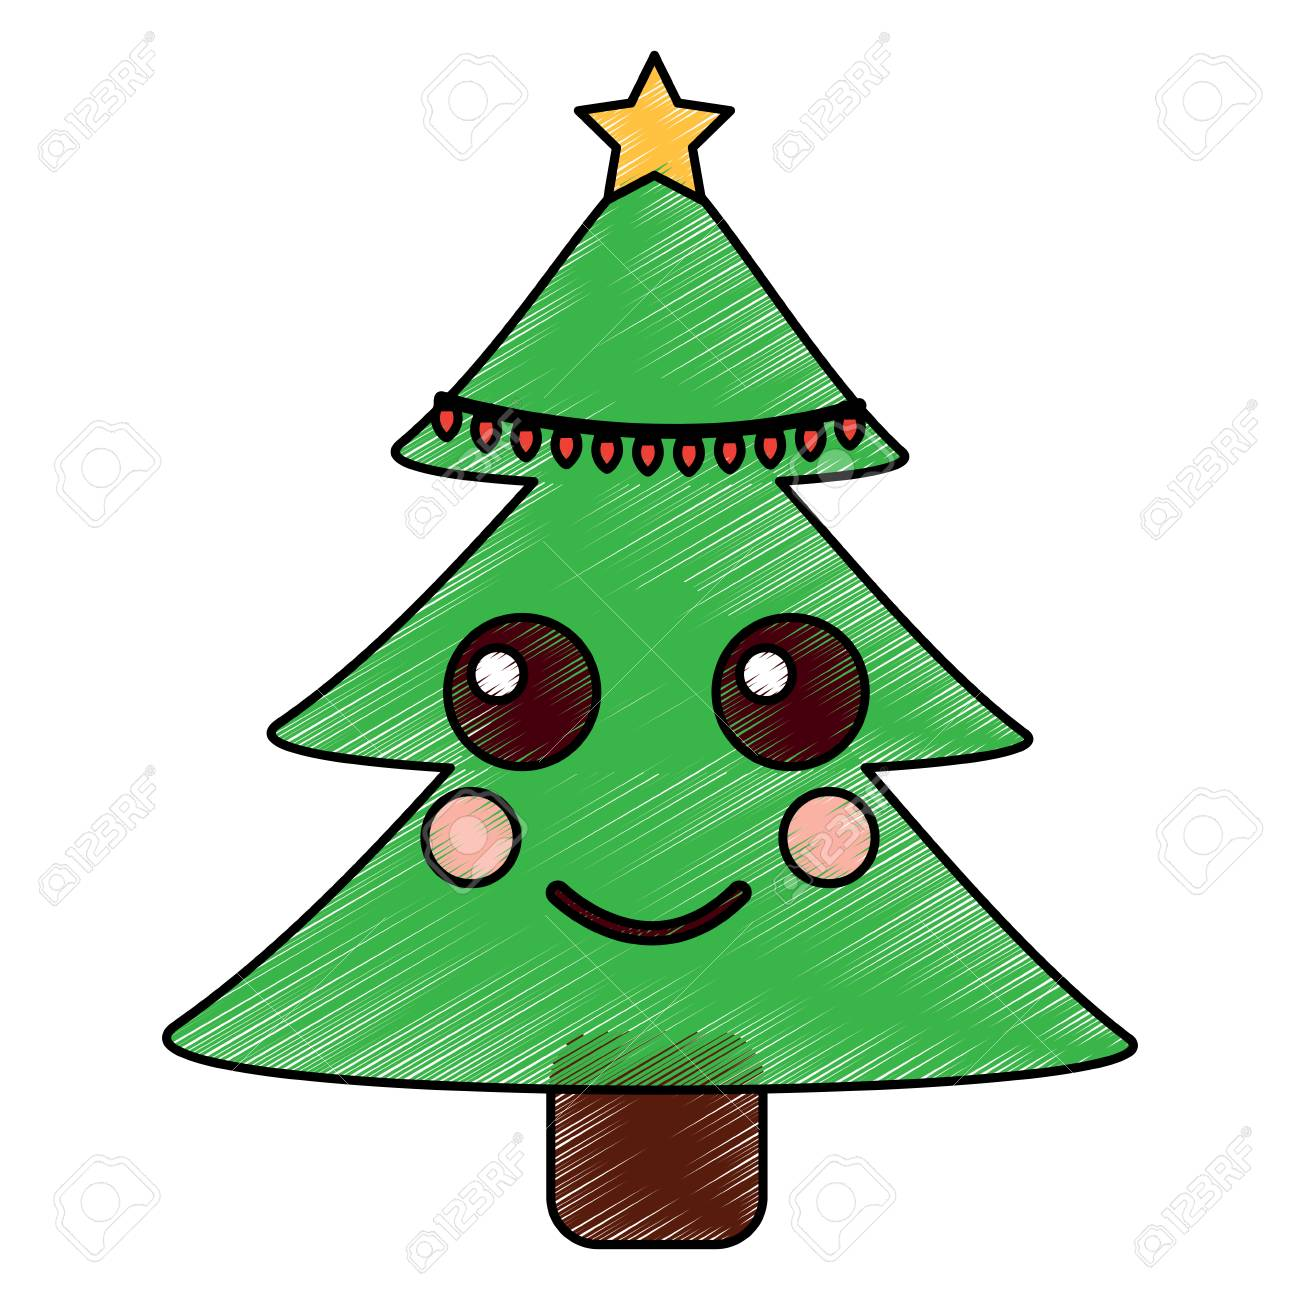 Christmas Tree Cartoon Smiling Vector Illustration Drawing Image